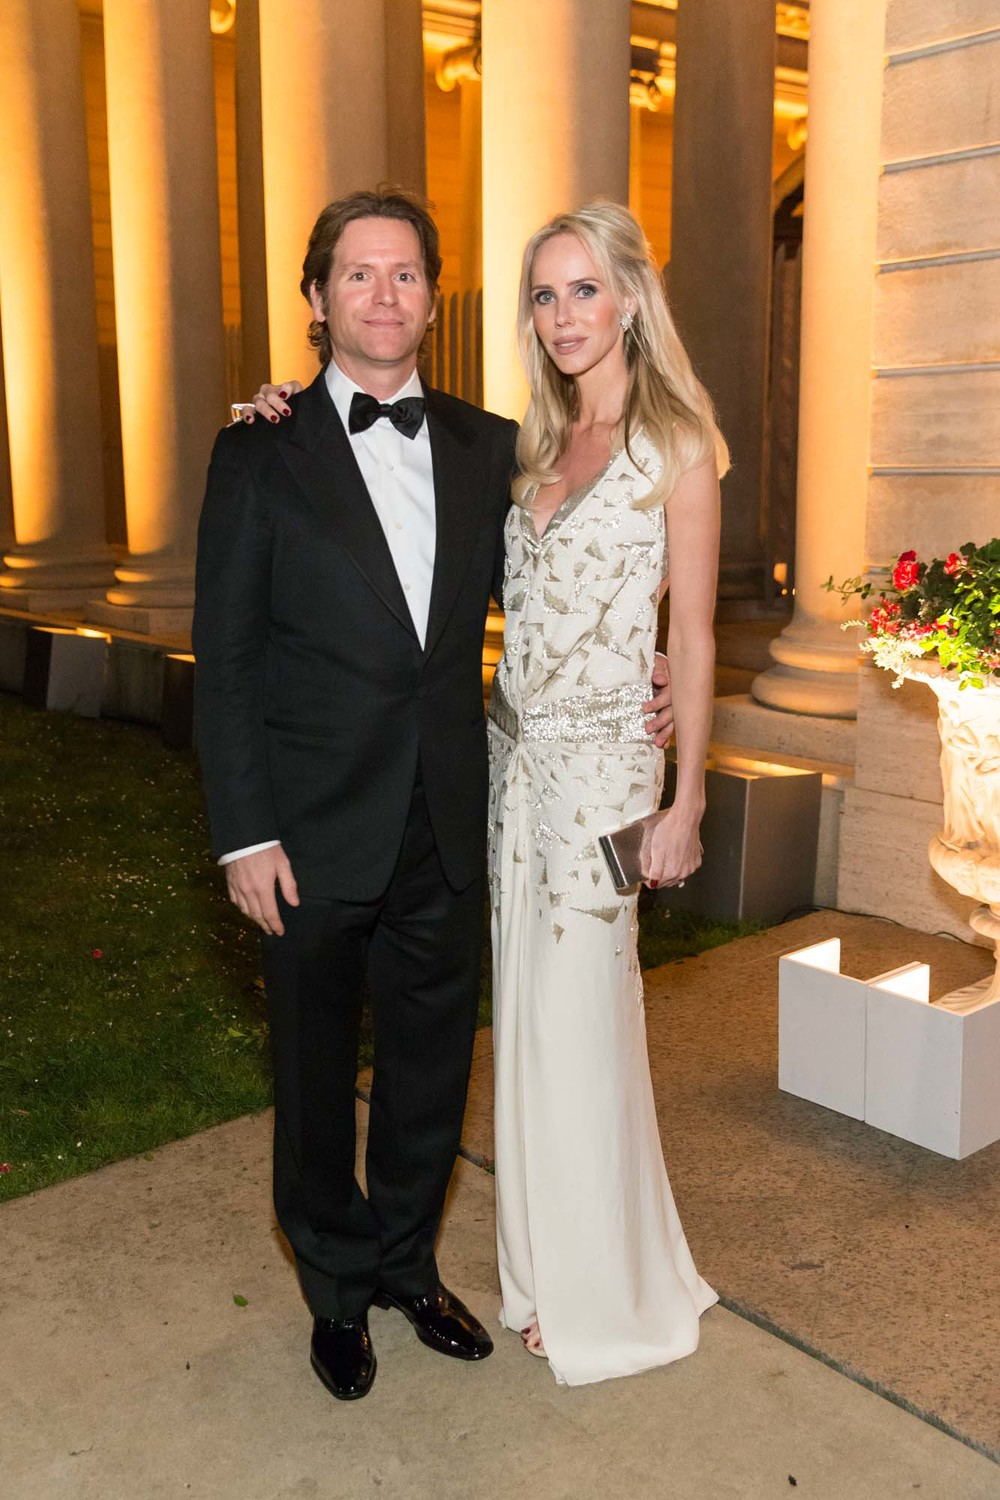 Trevor Traina, and Vanessa Getty at the Salvatore Ferragamo 2014 Mid-Winter gala to benefit the Fine Arts Museums, San Francisco